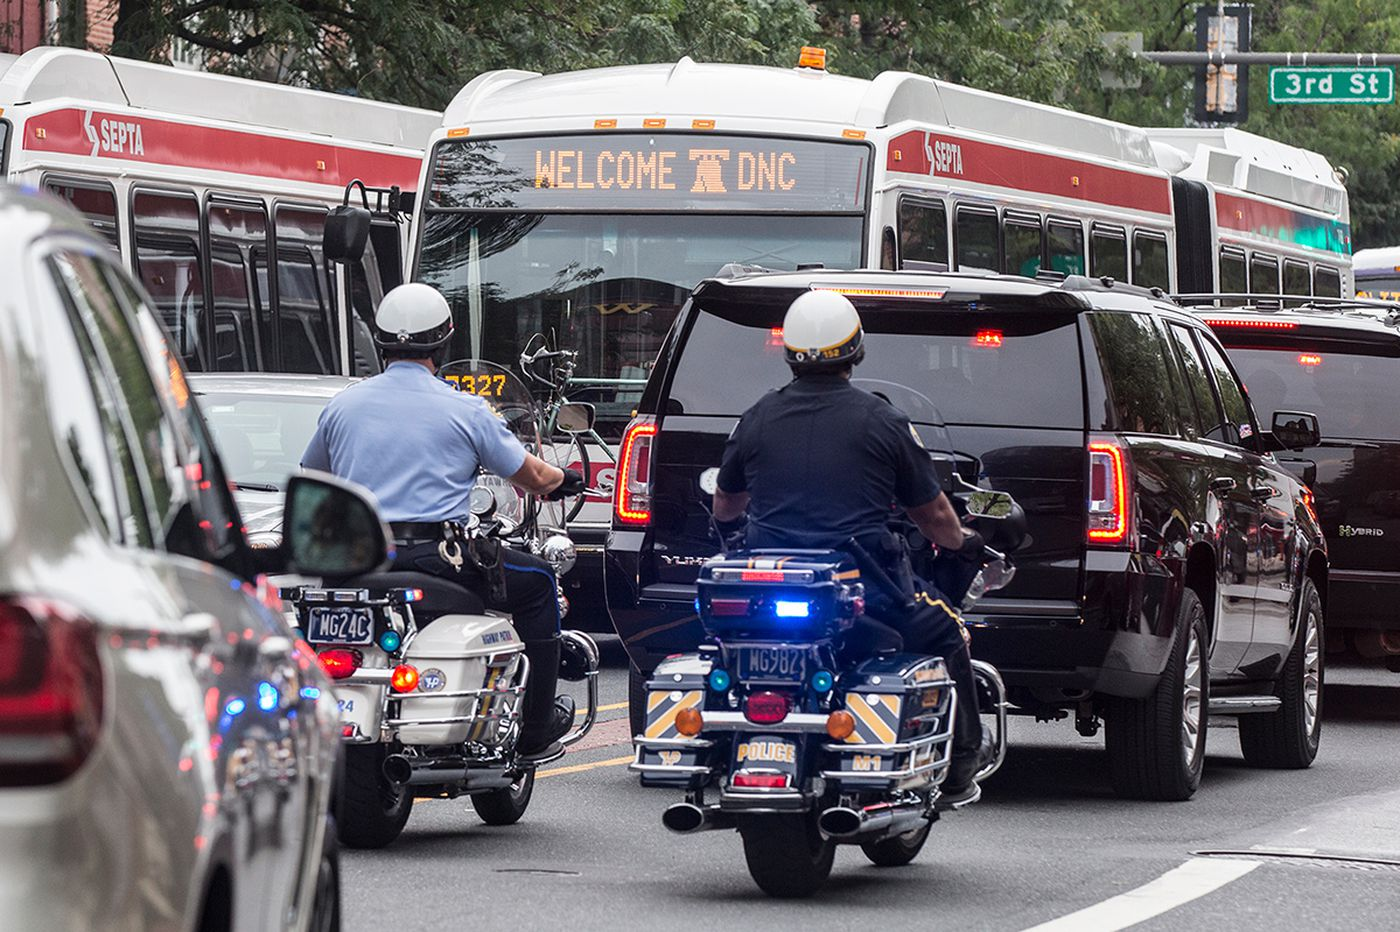 Traffic delays and detours mark travel on first day of DNC